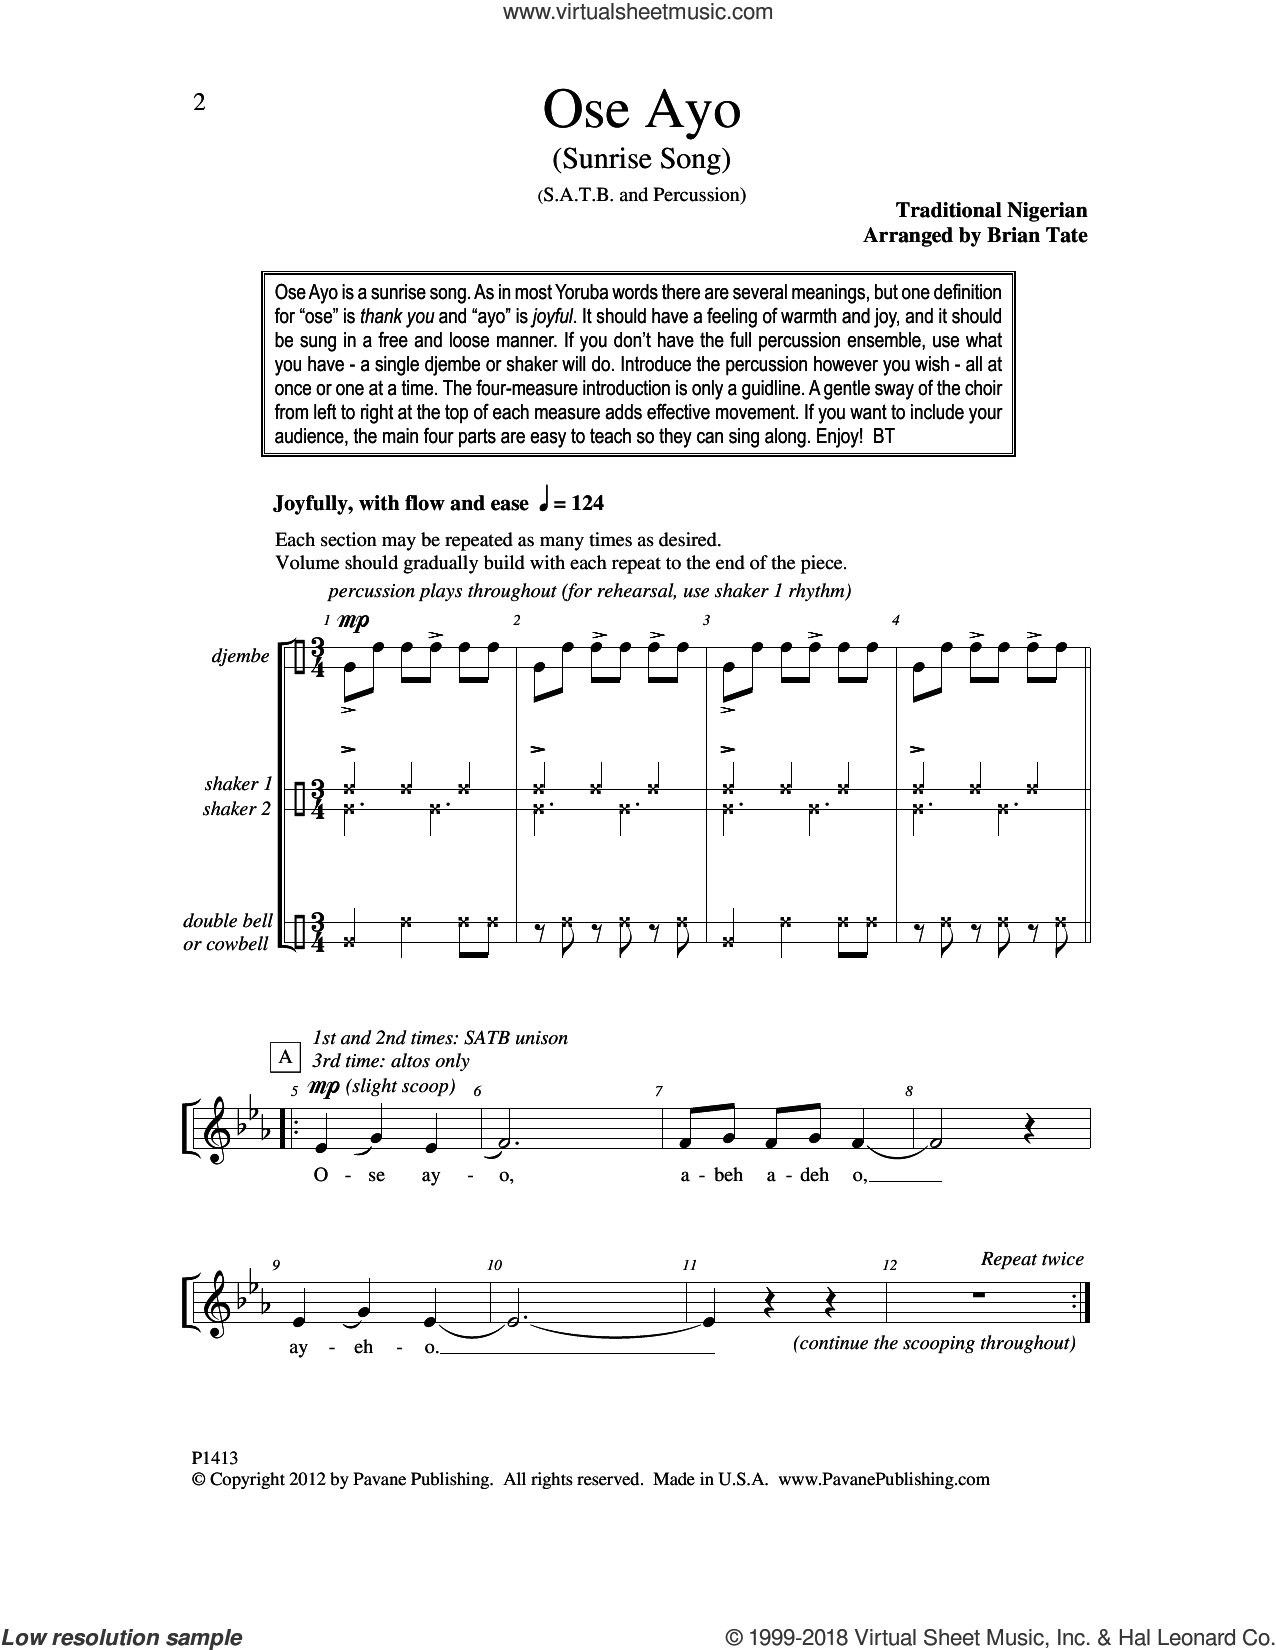 Ose Ayo (Sunrise Song) sheet music for choir by Brian Tate, intermediate skill level